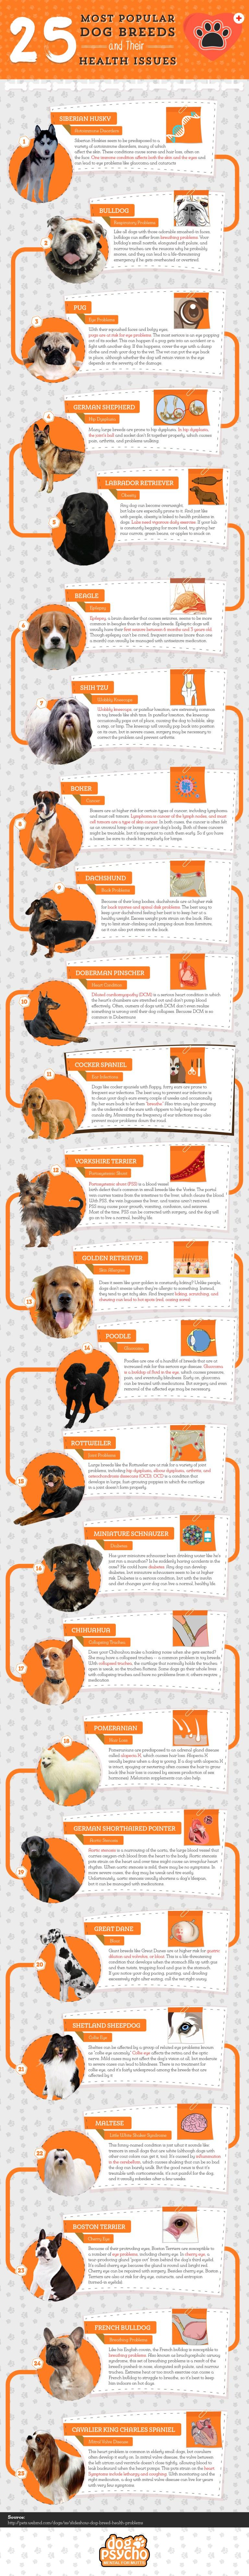 Oasdom.com - dog-breeds-and-their-health-issues